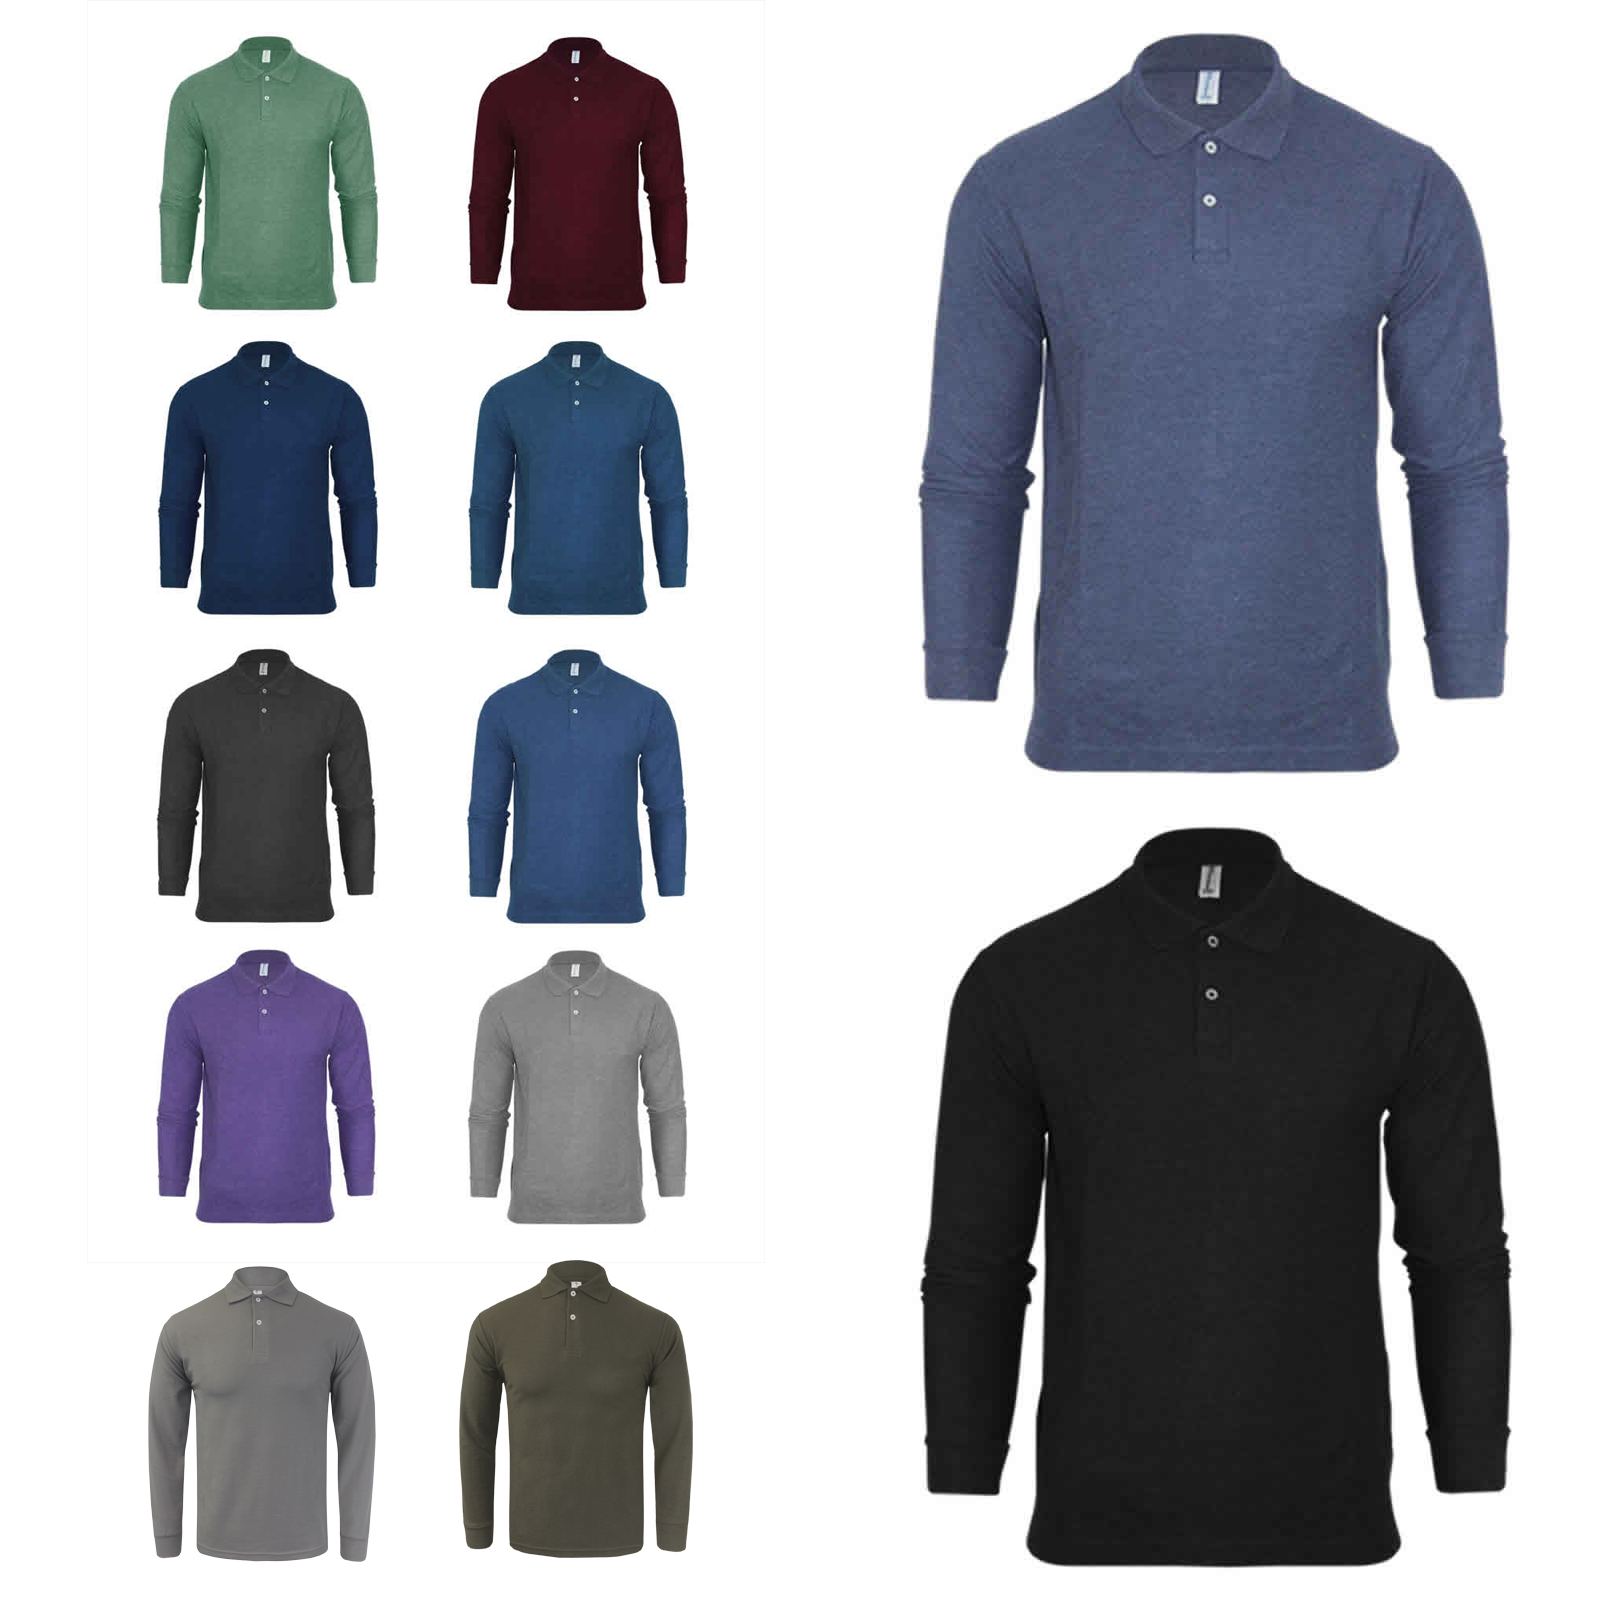 617d42b4f Details about Mens Plain Long Sleeve Collared Knitted Polo Shirt NEW Sizes  M-XXL